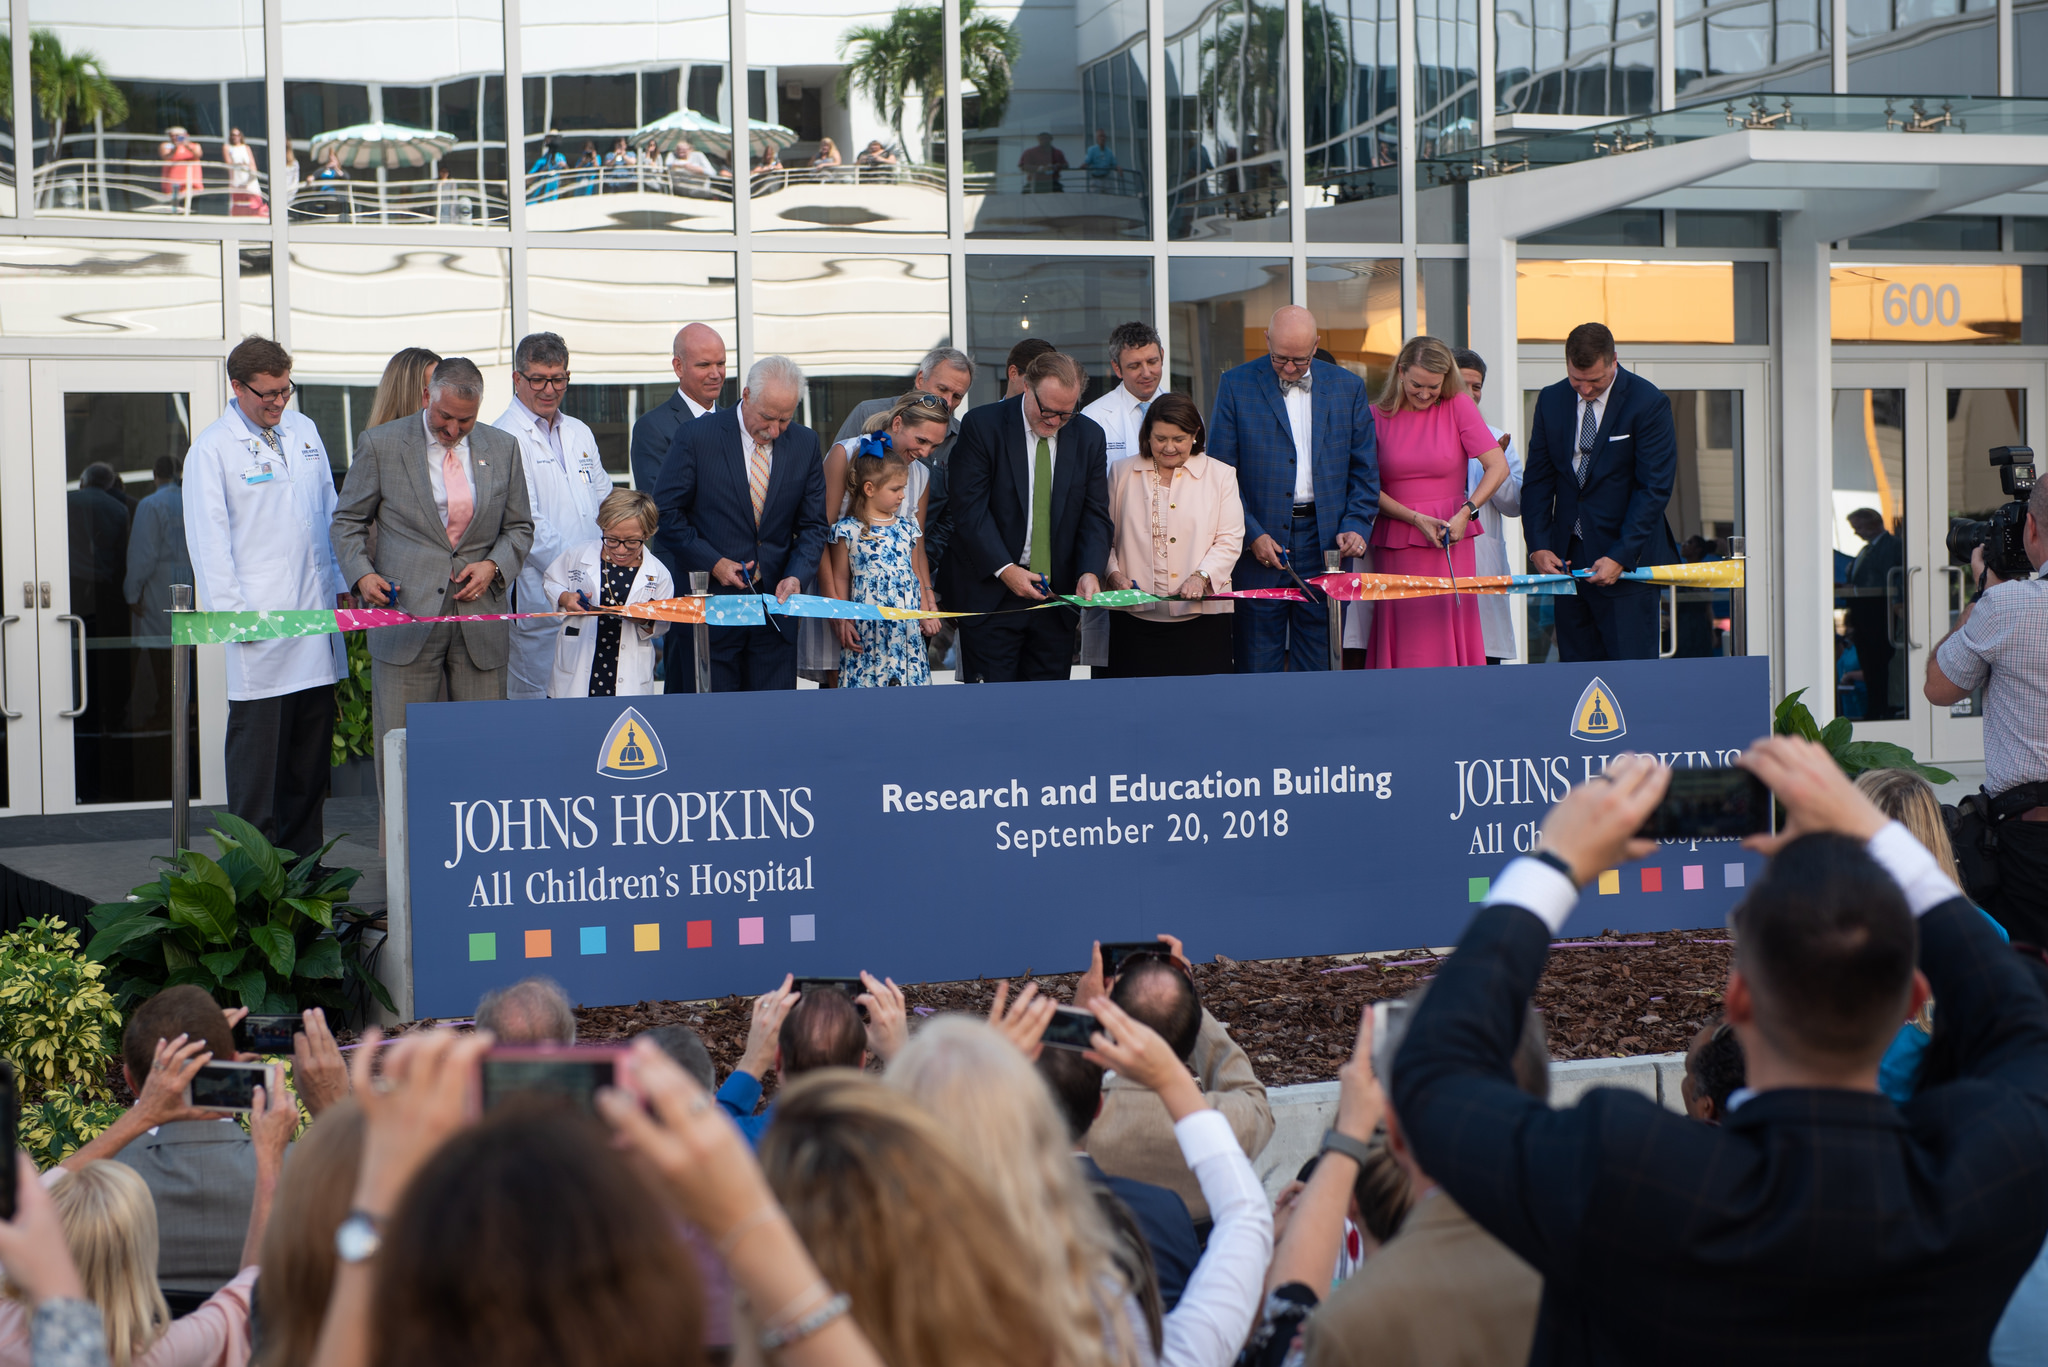 Ribbon cutting ceremony of the Johns Hopkins All Children's Hospital Research and Education Building